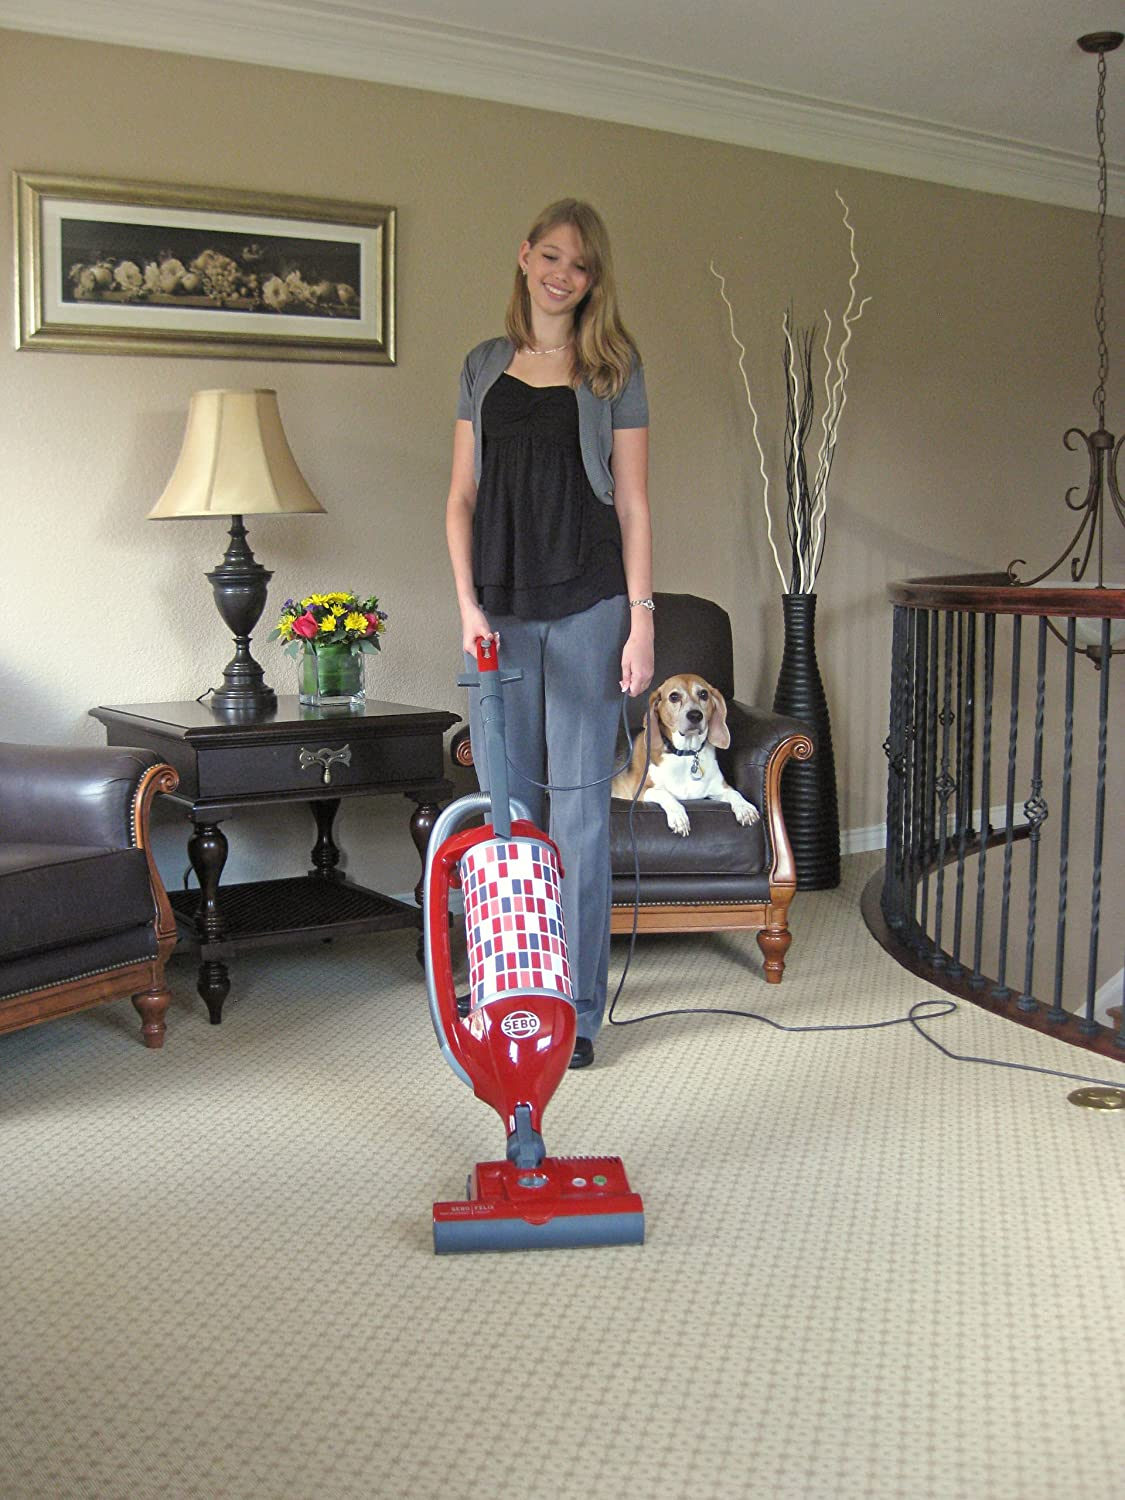 Sebo Vacuums 9809AM Felix Premium Rosso Upright Vacuum with Parquet, Red Gray – Corded